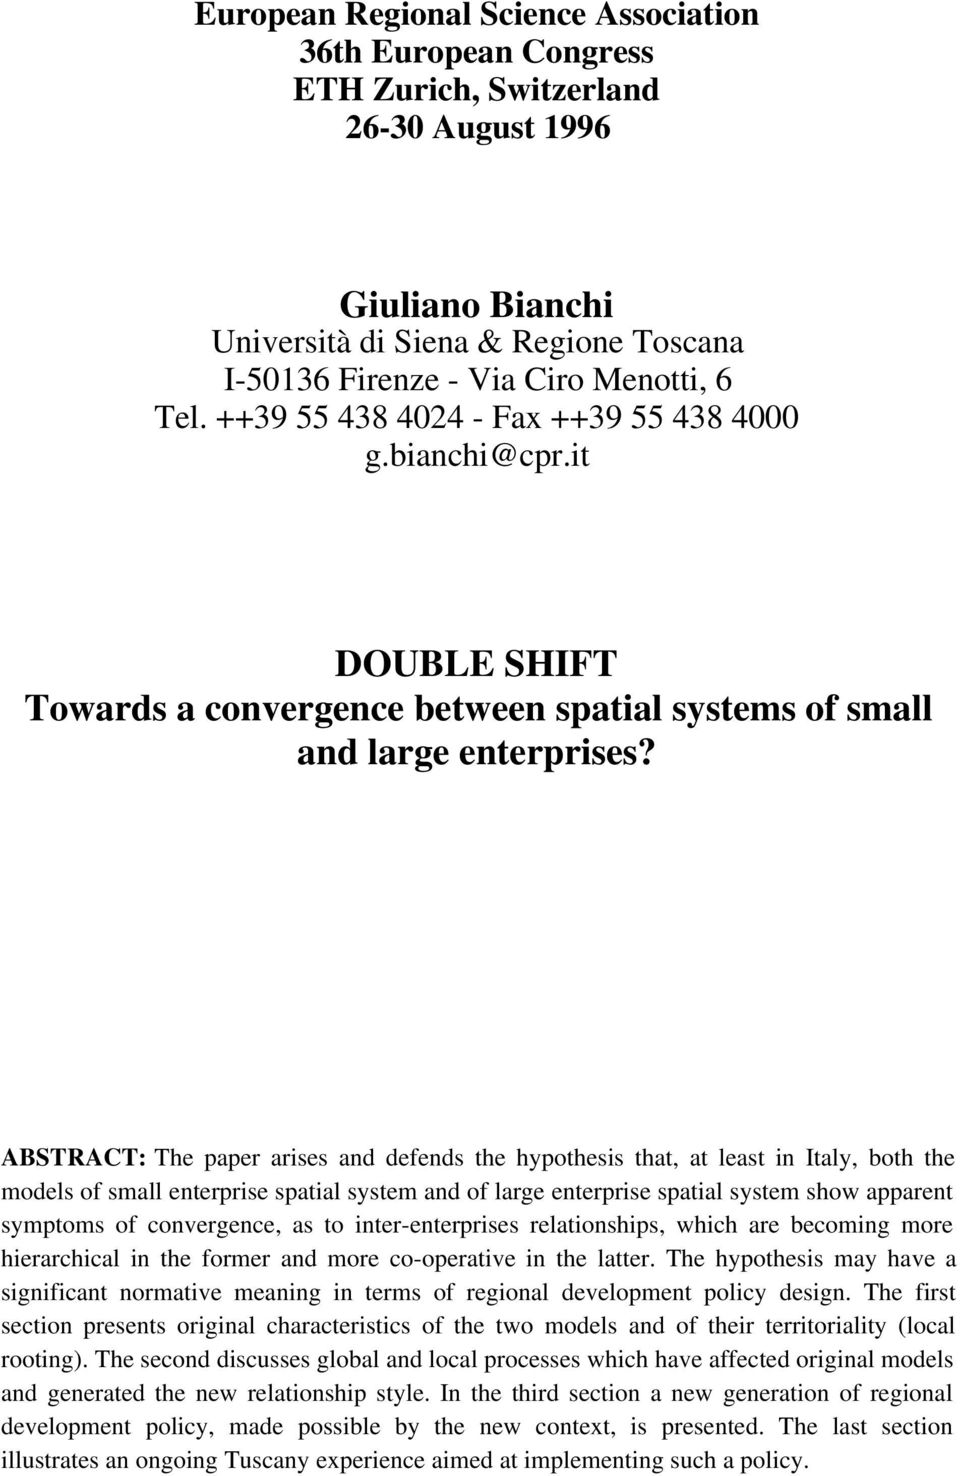 ABSTRACT: The paper arises and defends the hypothesis that, at least in Italy, both the models of small enterprise spatial system and of large enterprise spatial system show apparent symptoms of